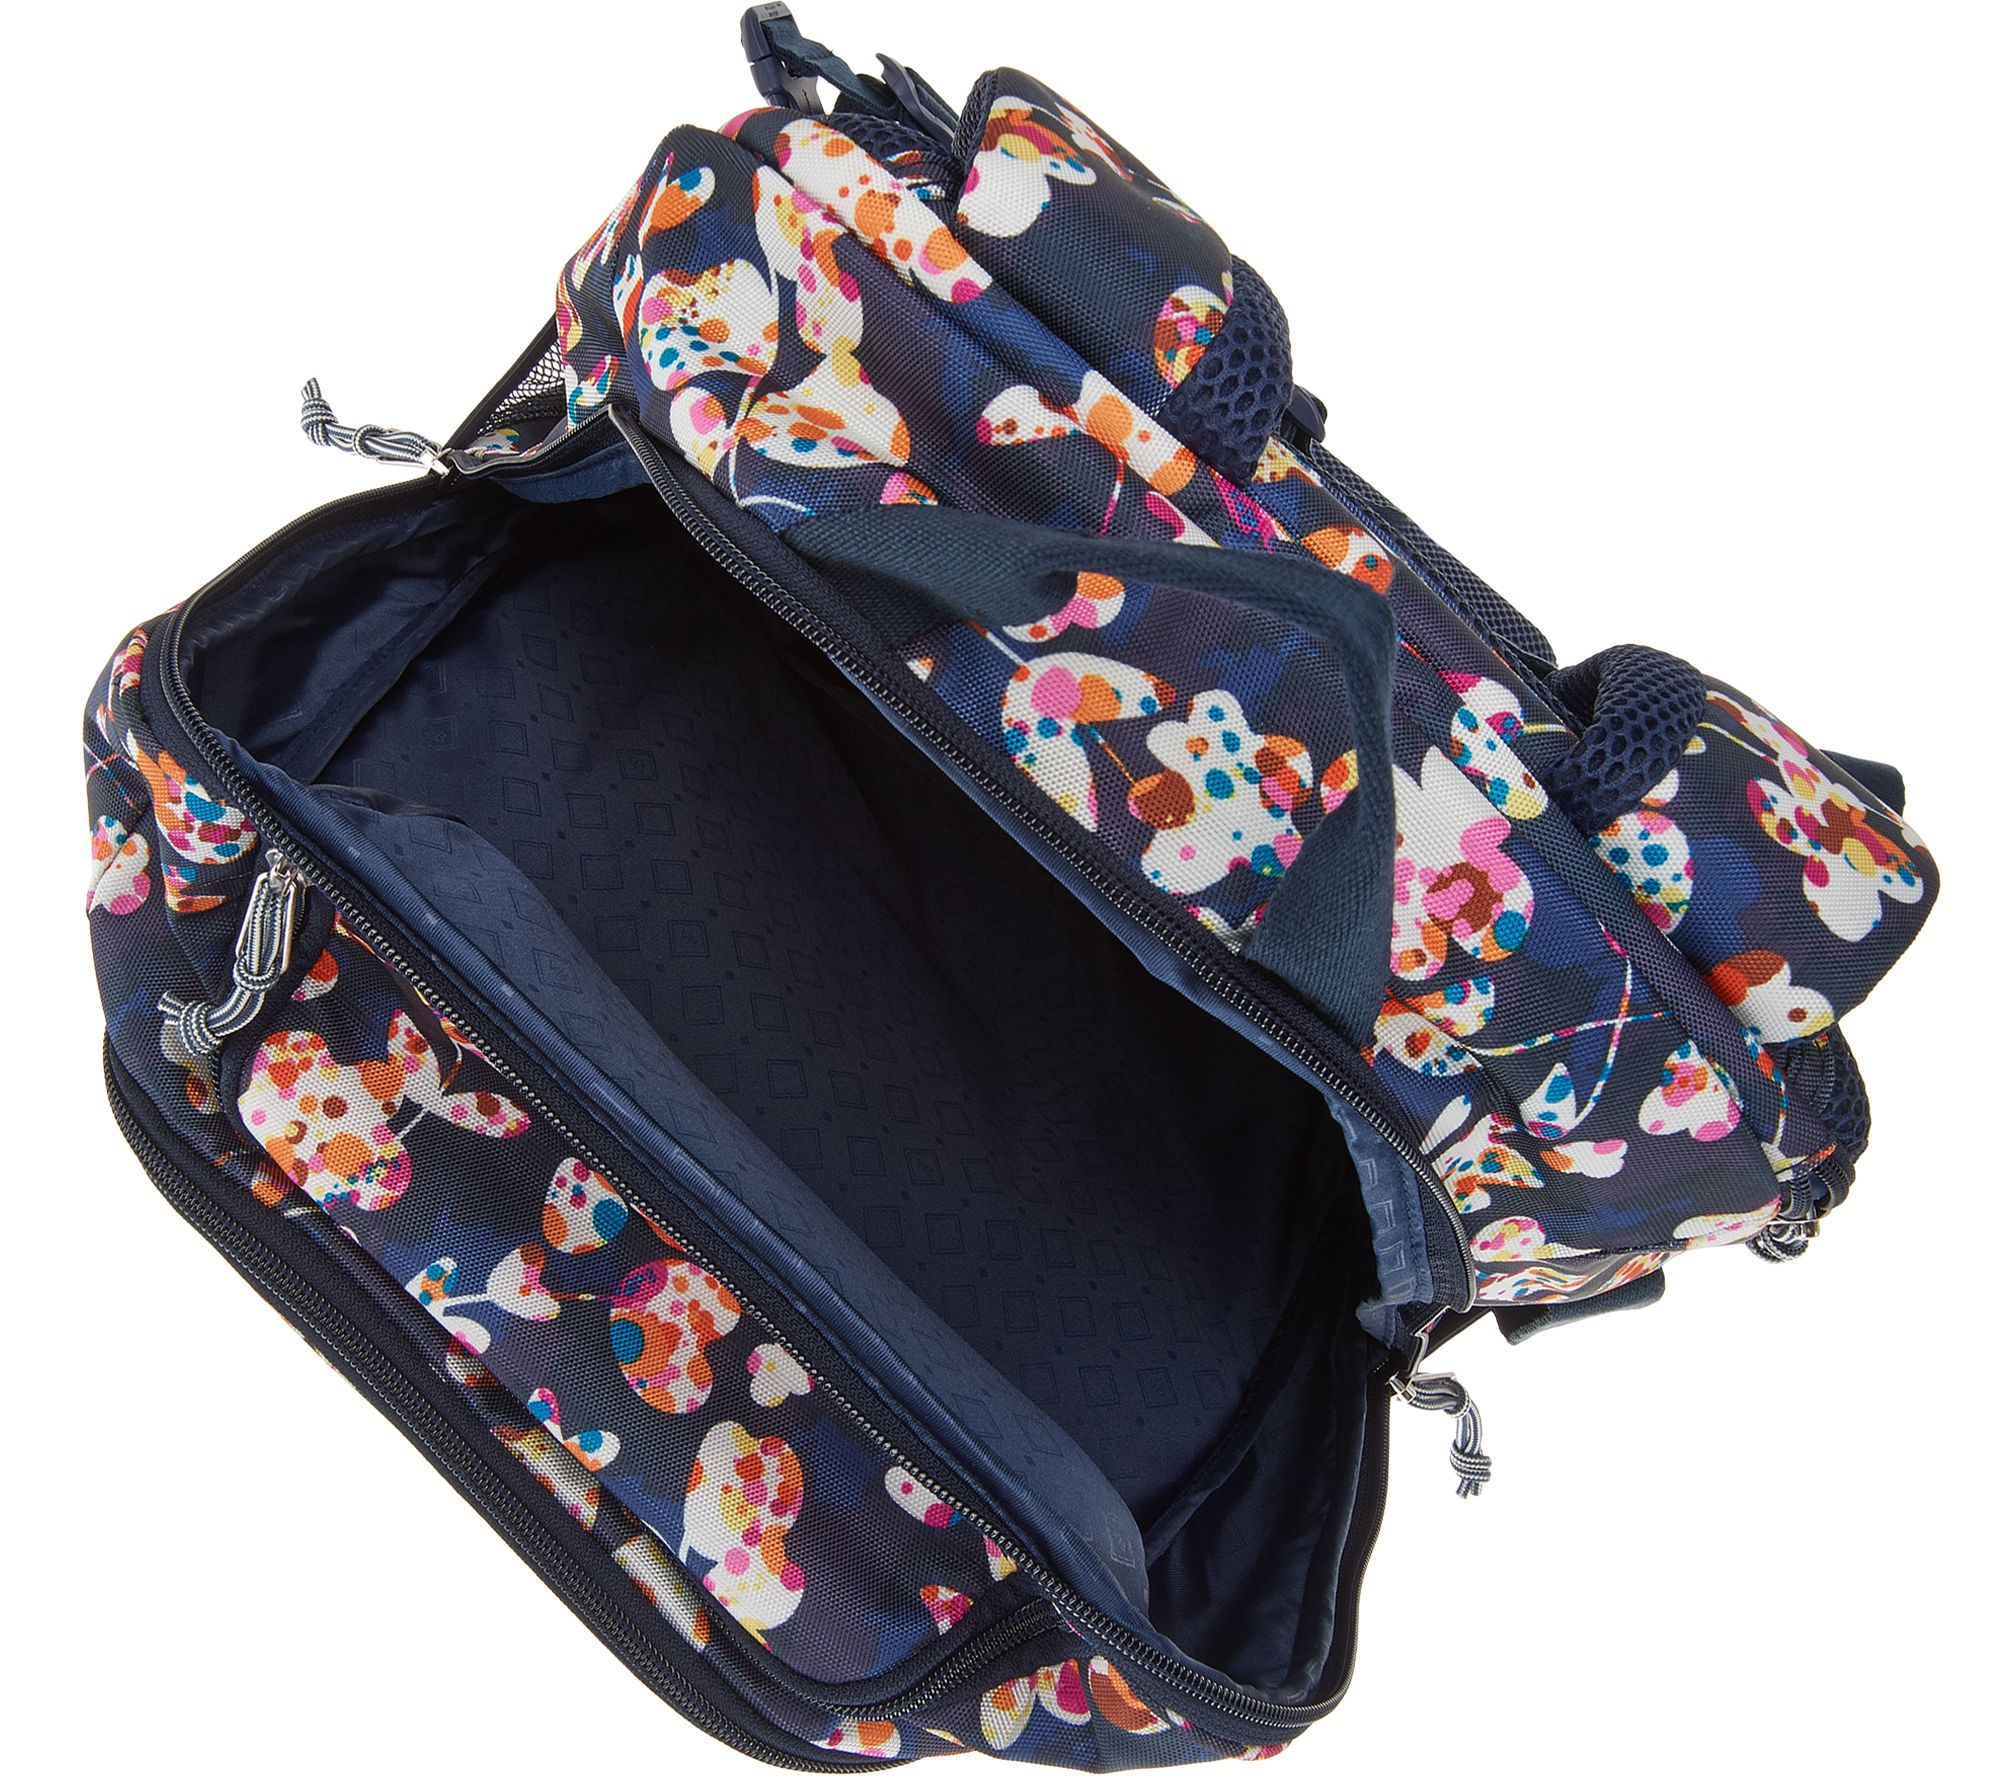 Vera Bradley Journey Lighten Up Travel Backpack - Page 1 — QVC.com 85432f742cf25